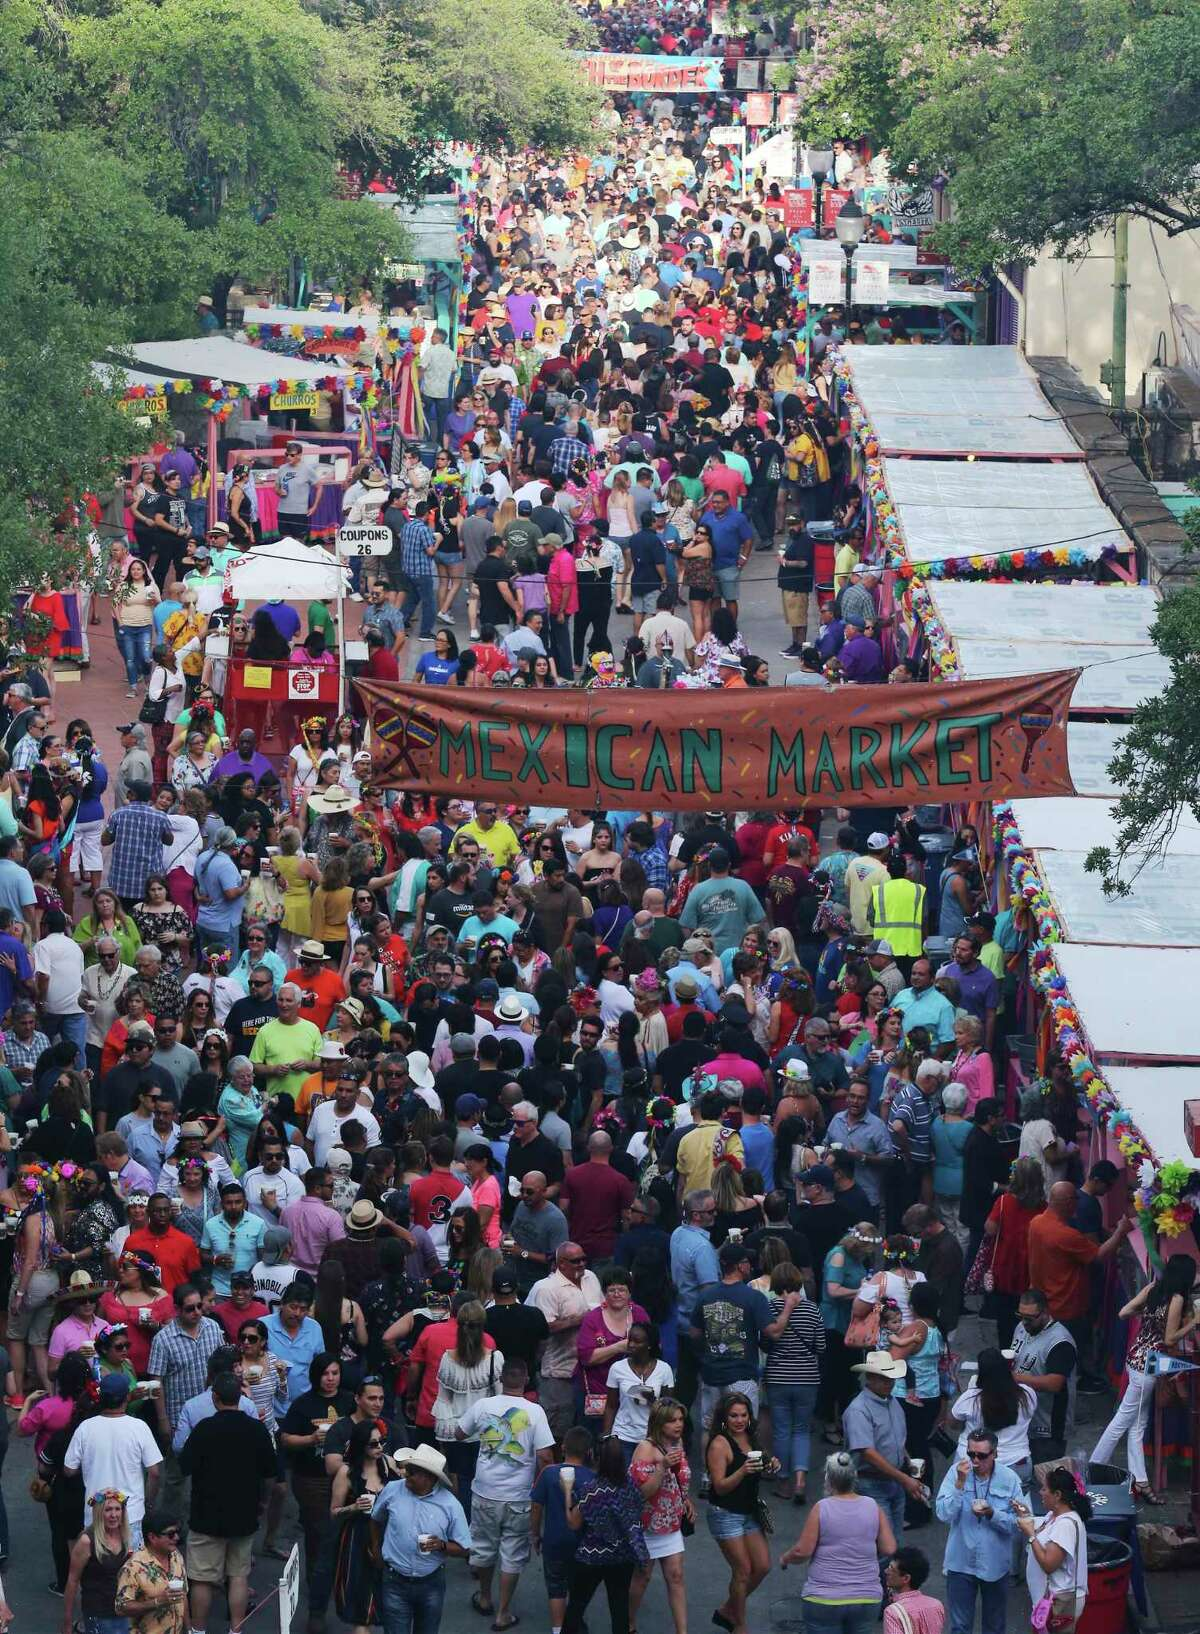 NIOSA kicks off in 2018 in La Villita downtown. All of Fiesta has been canceled this year out of concern for the spread of the coronavirus through crowds.